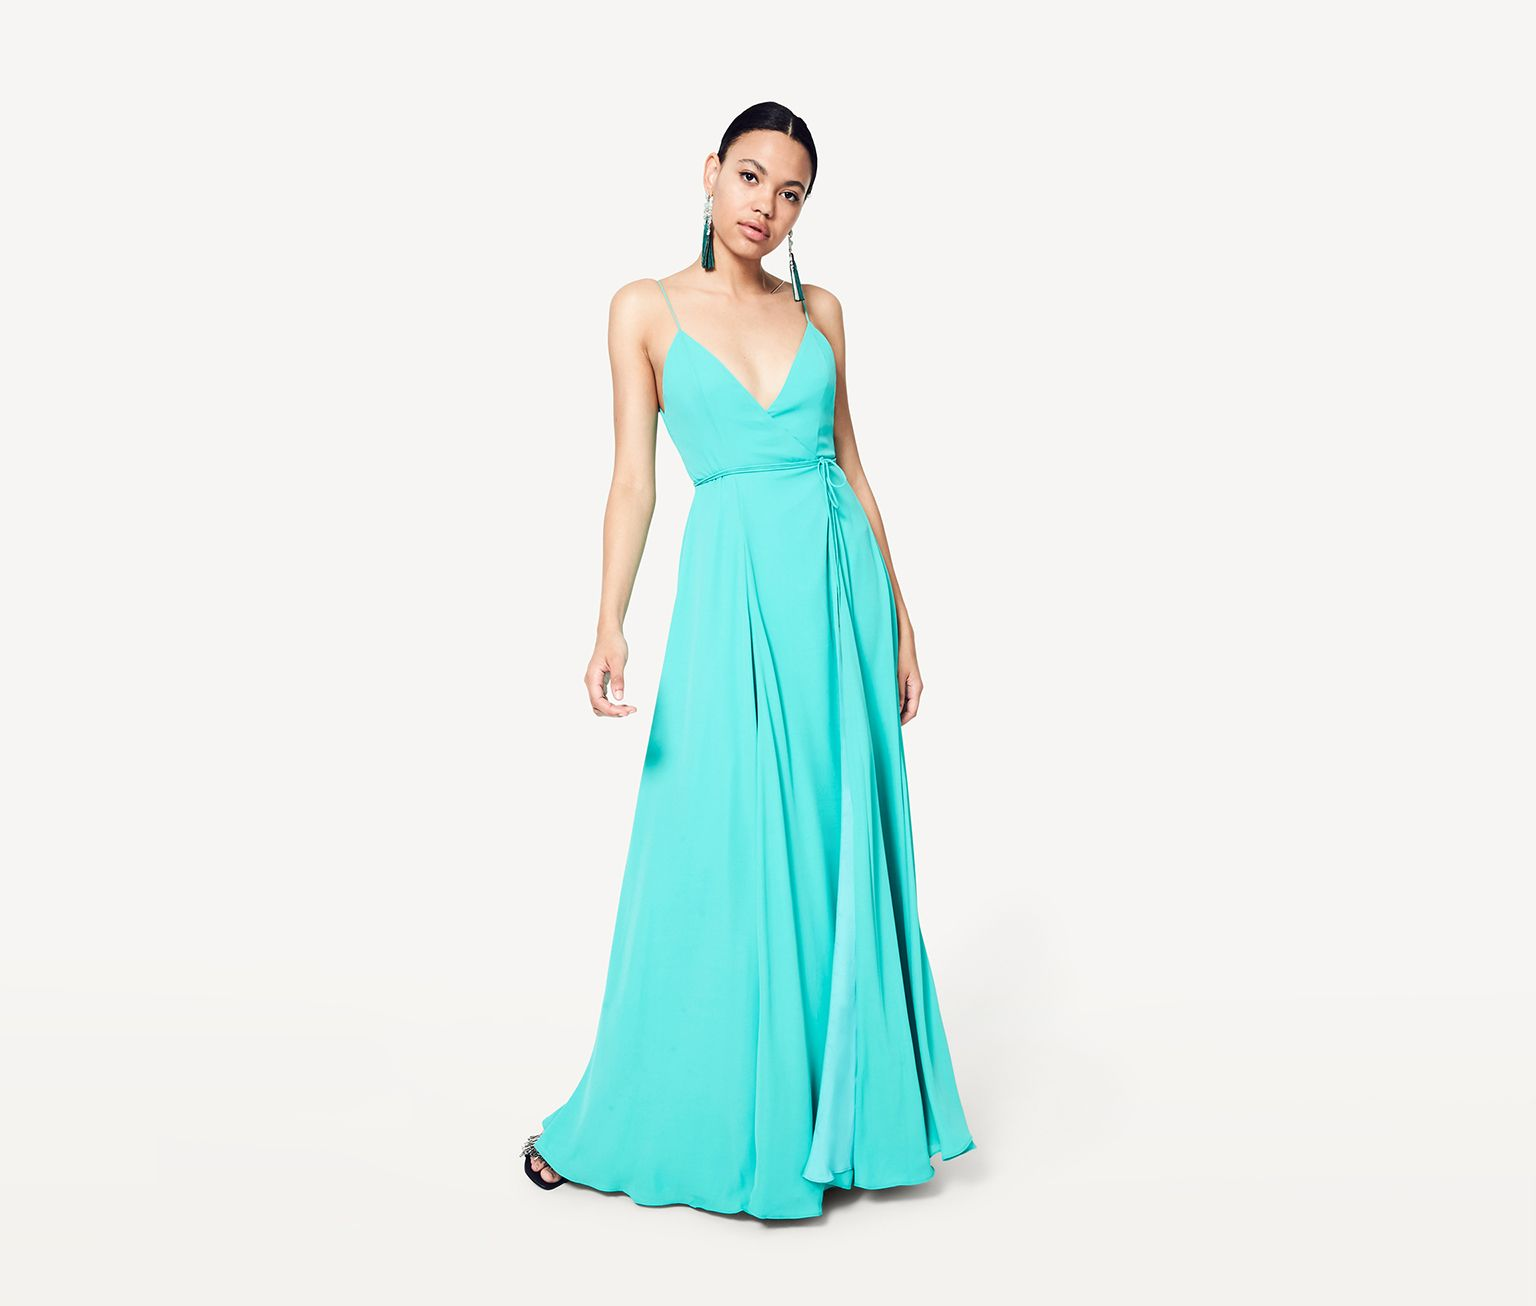 Formal dresses for summer wedding  The Mimi  bes blanches  Pinterest  Wrap dresses and Clothes